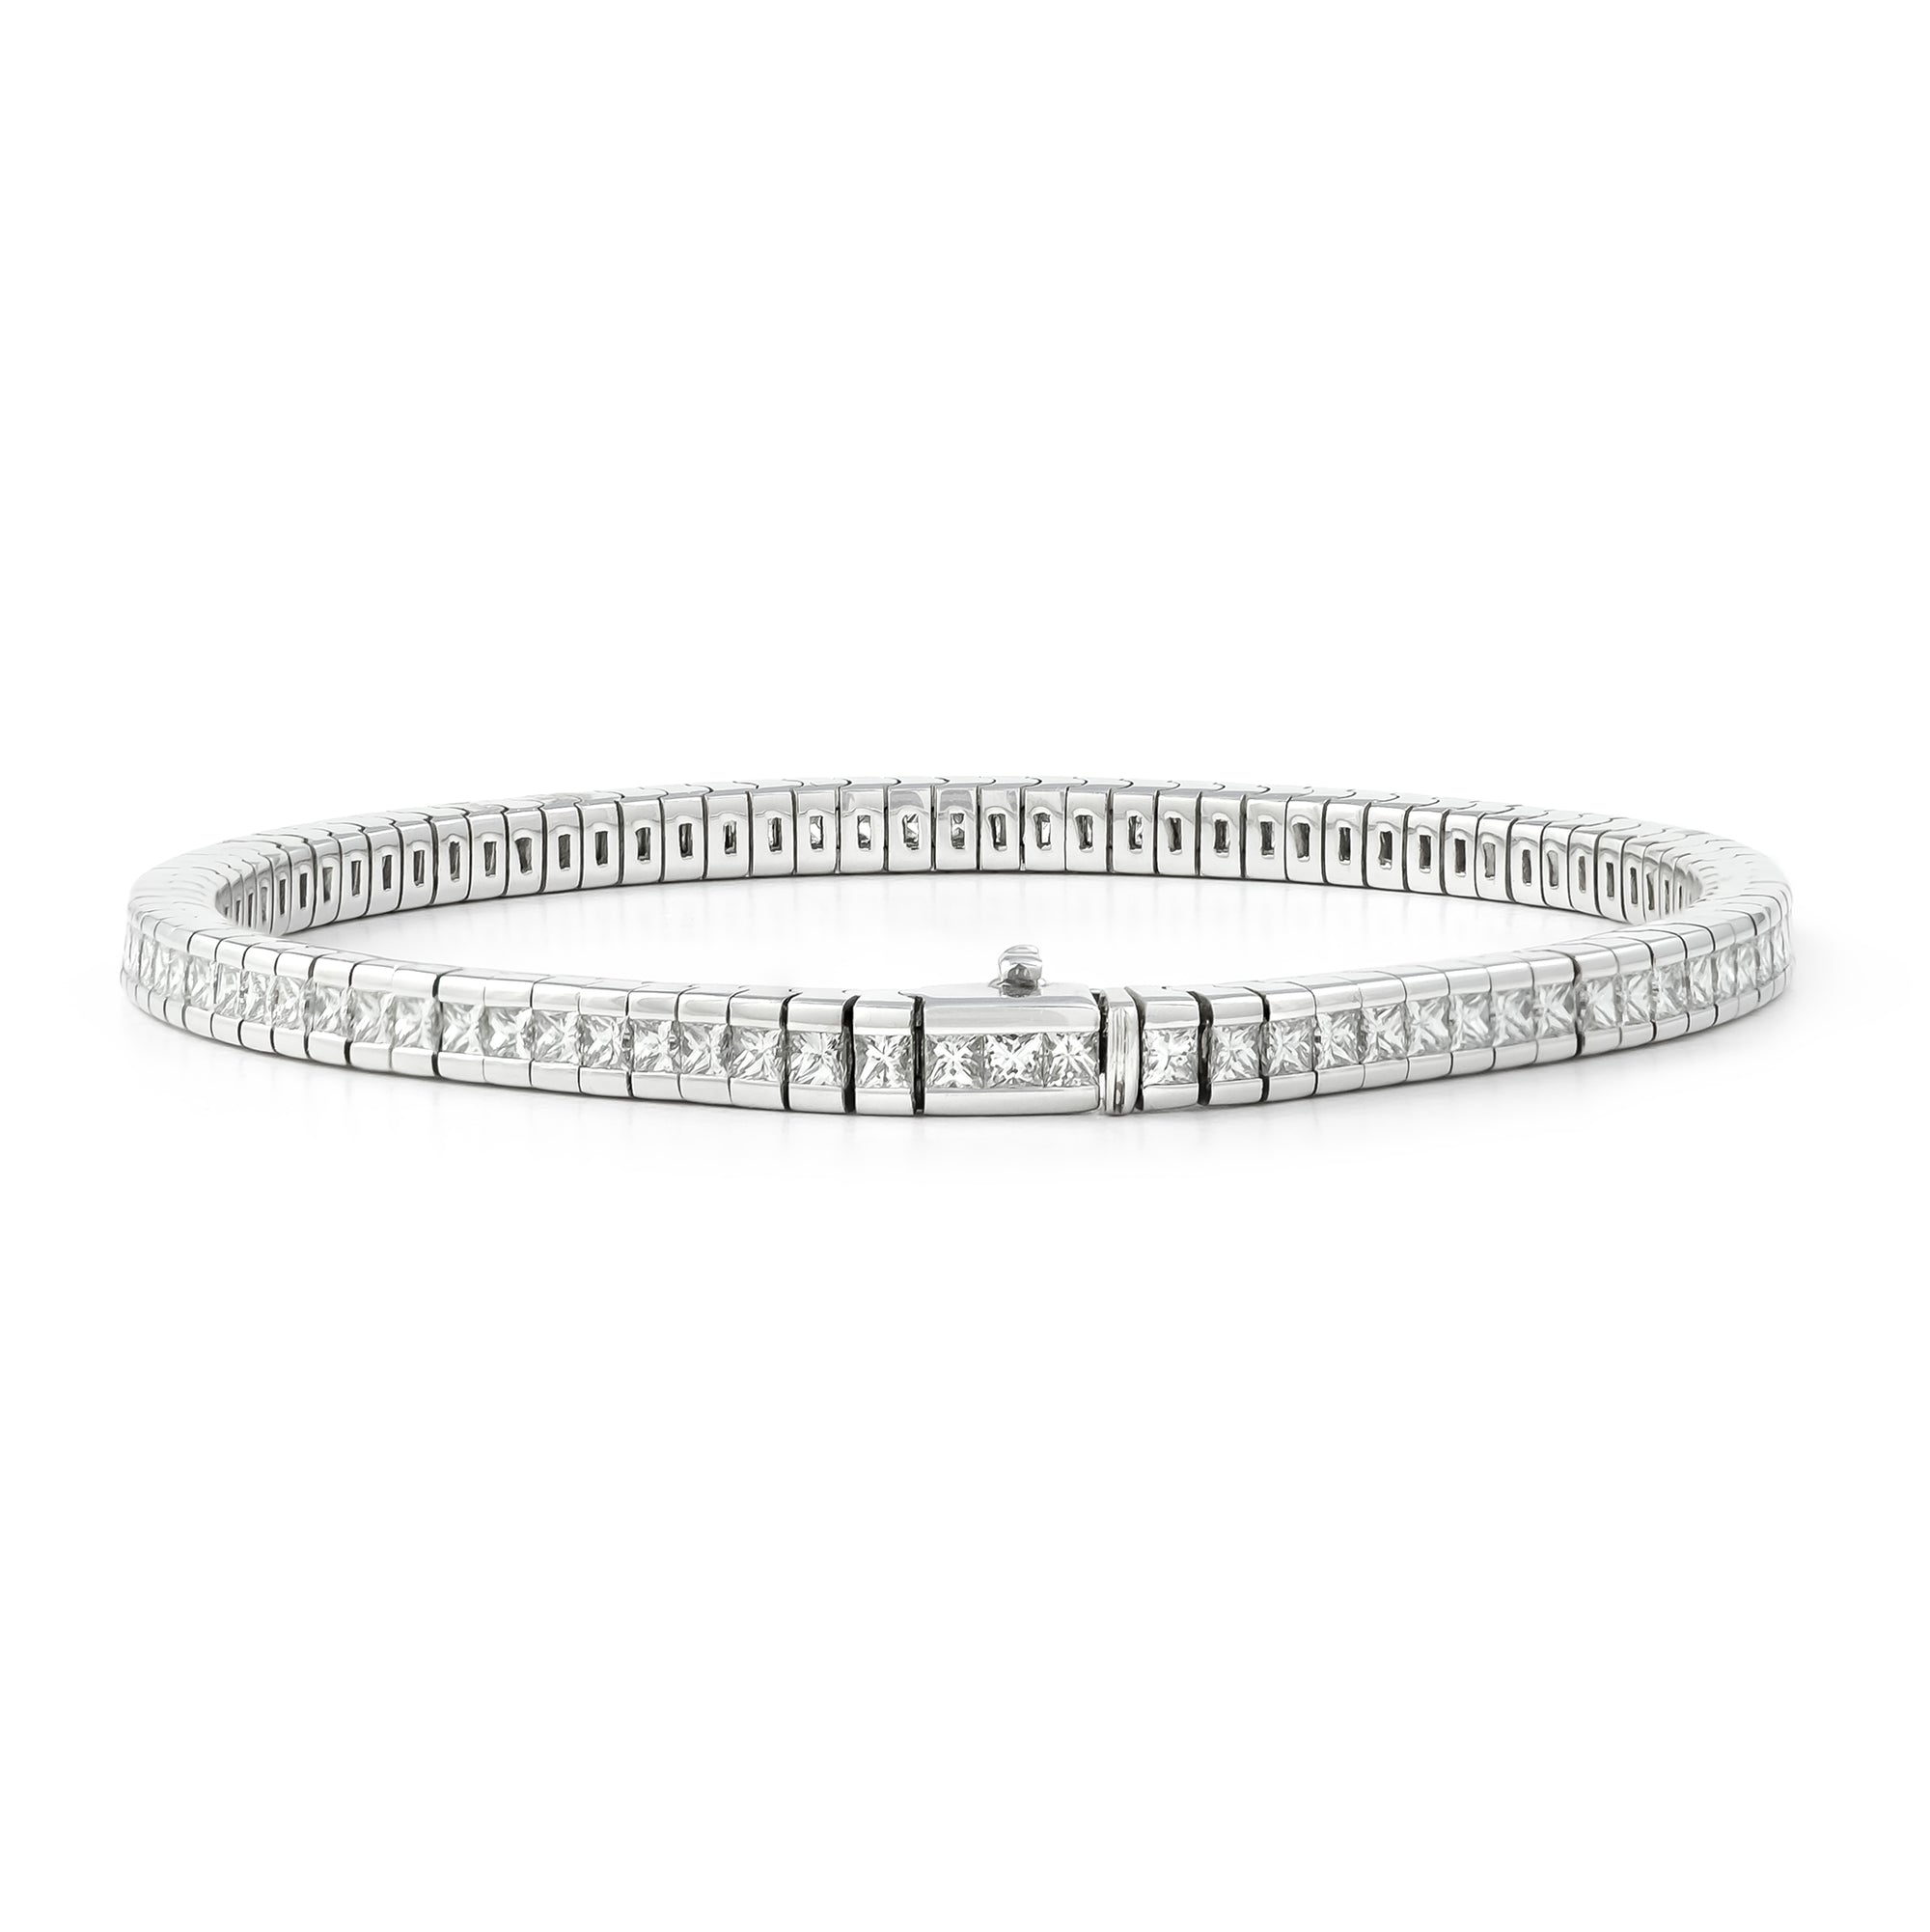 4.50ct 18ct White Gold Diamond Tennis Bracelet